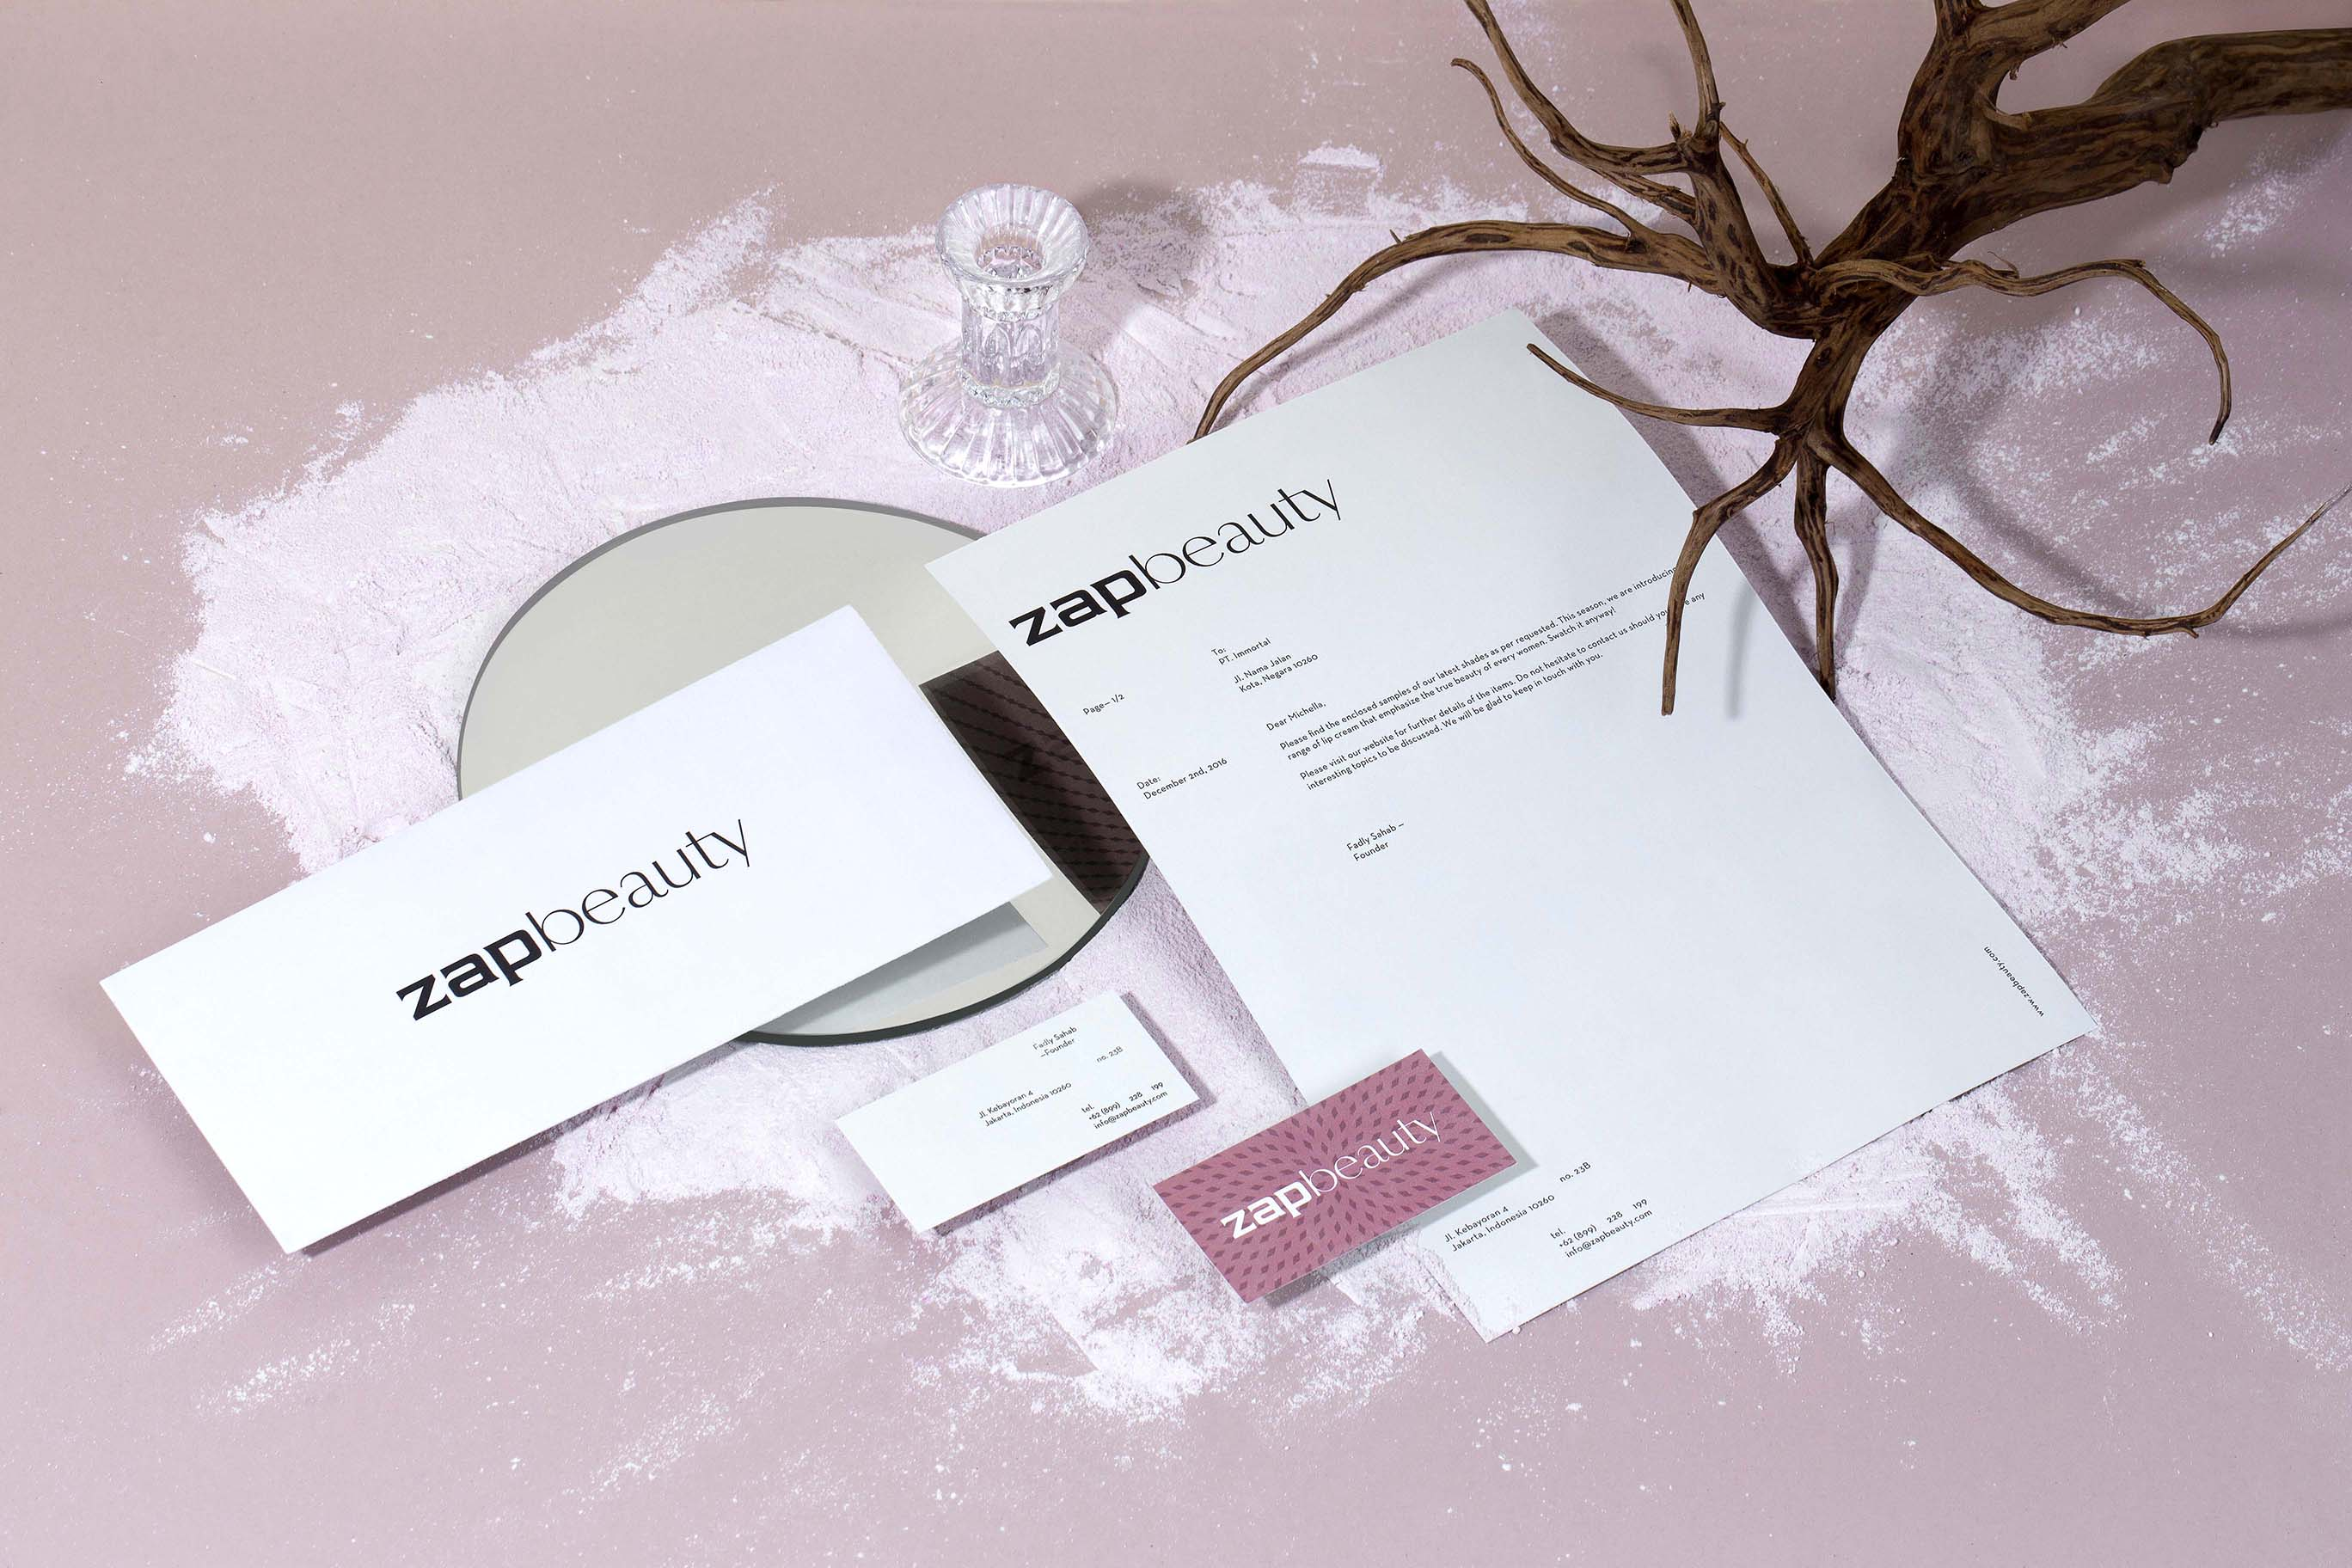 workbyw-zapbeauty-Collateral-03